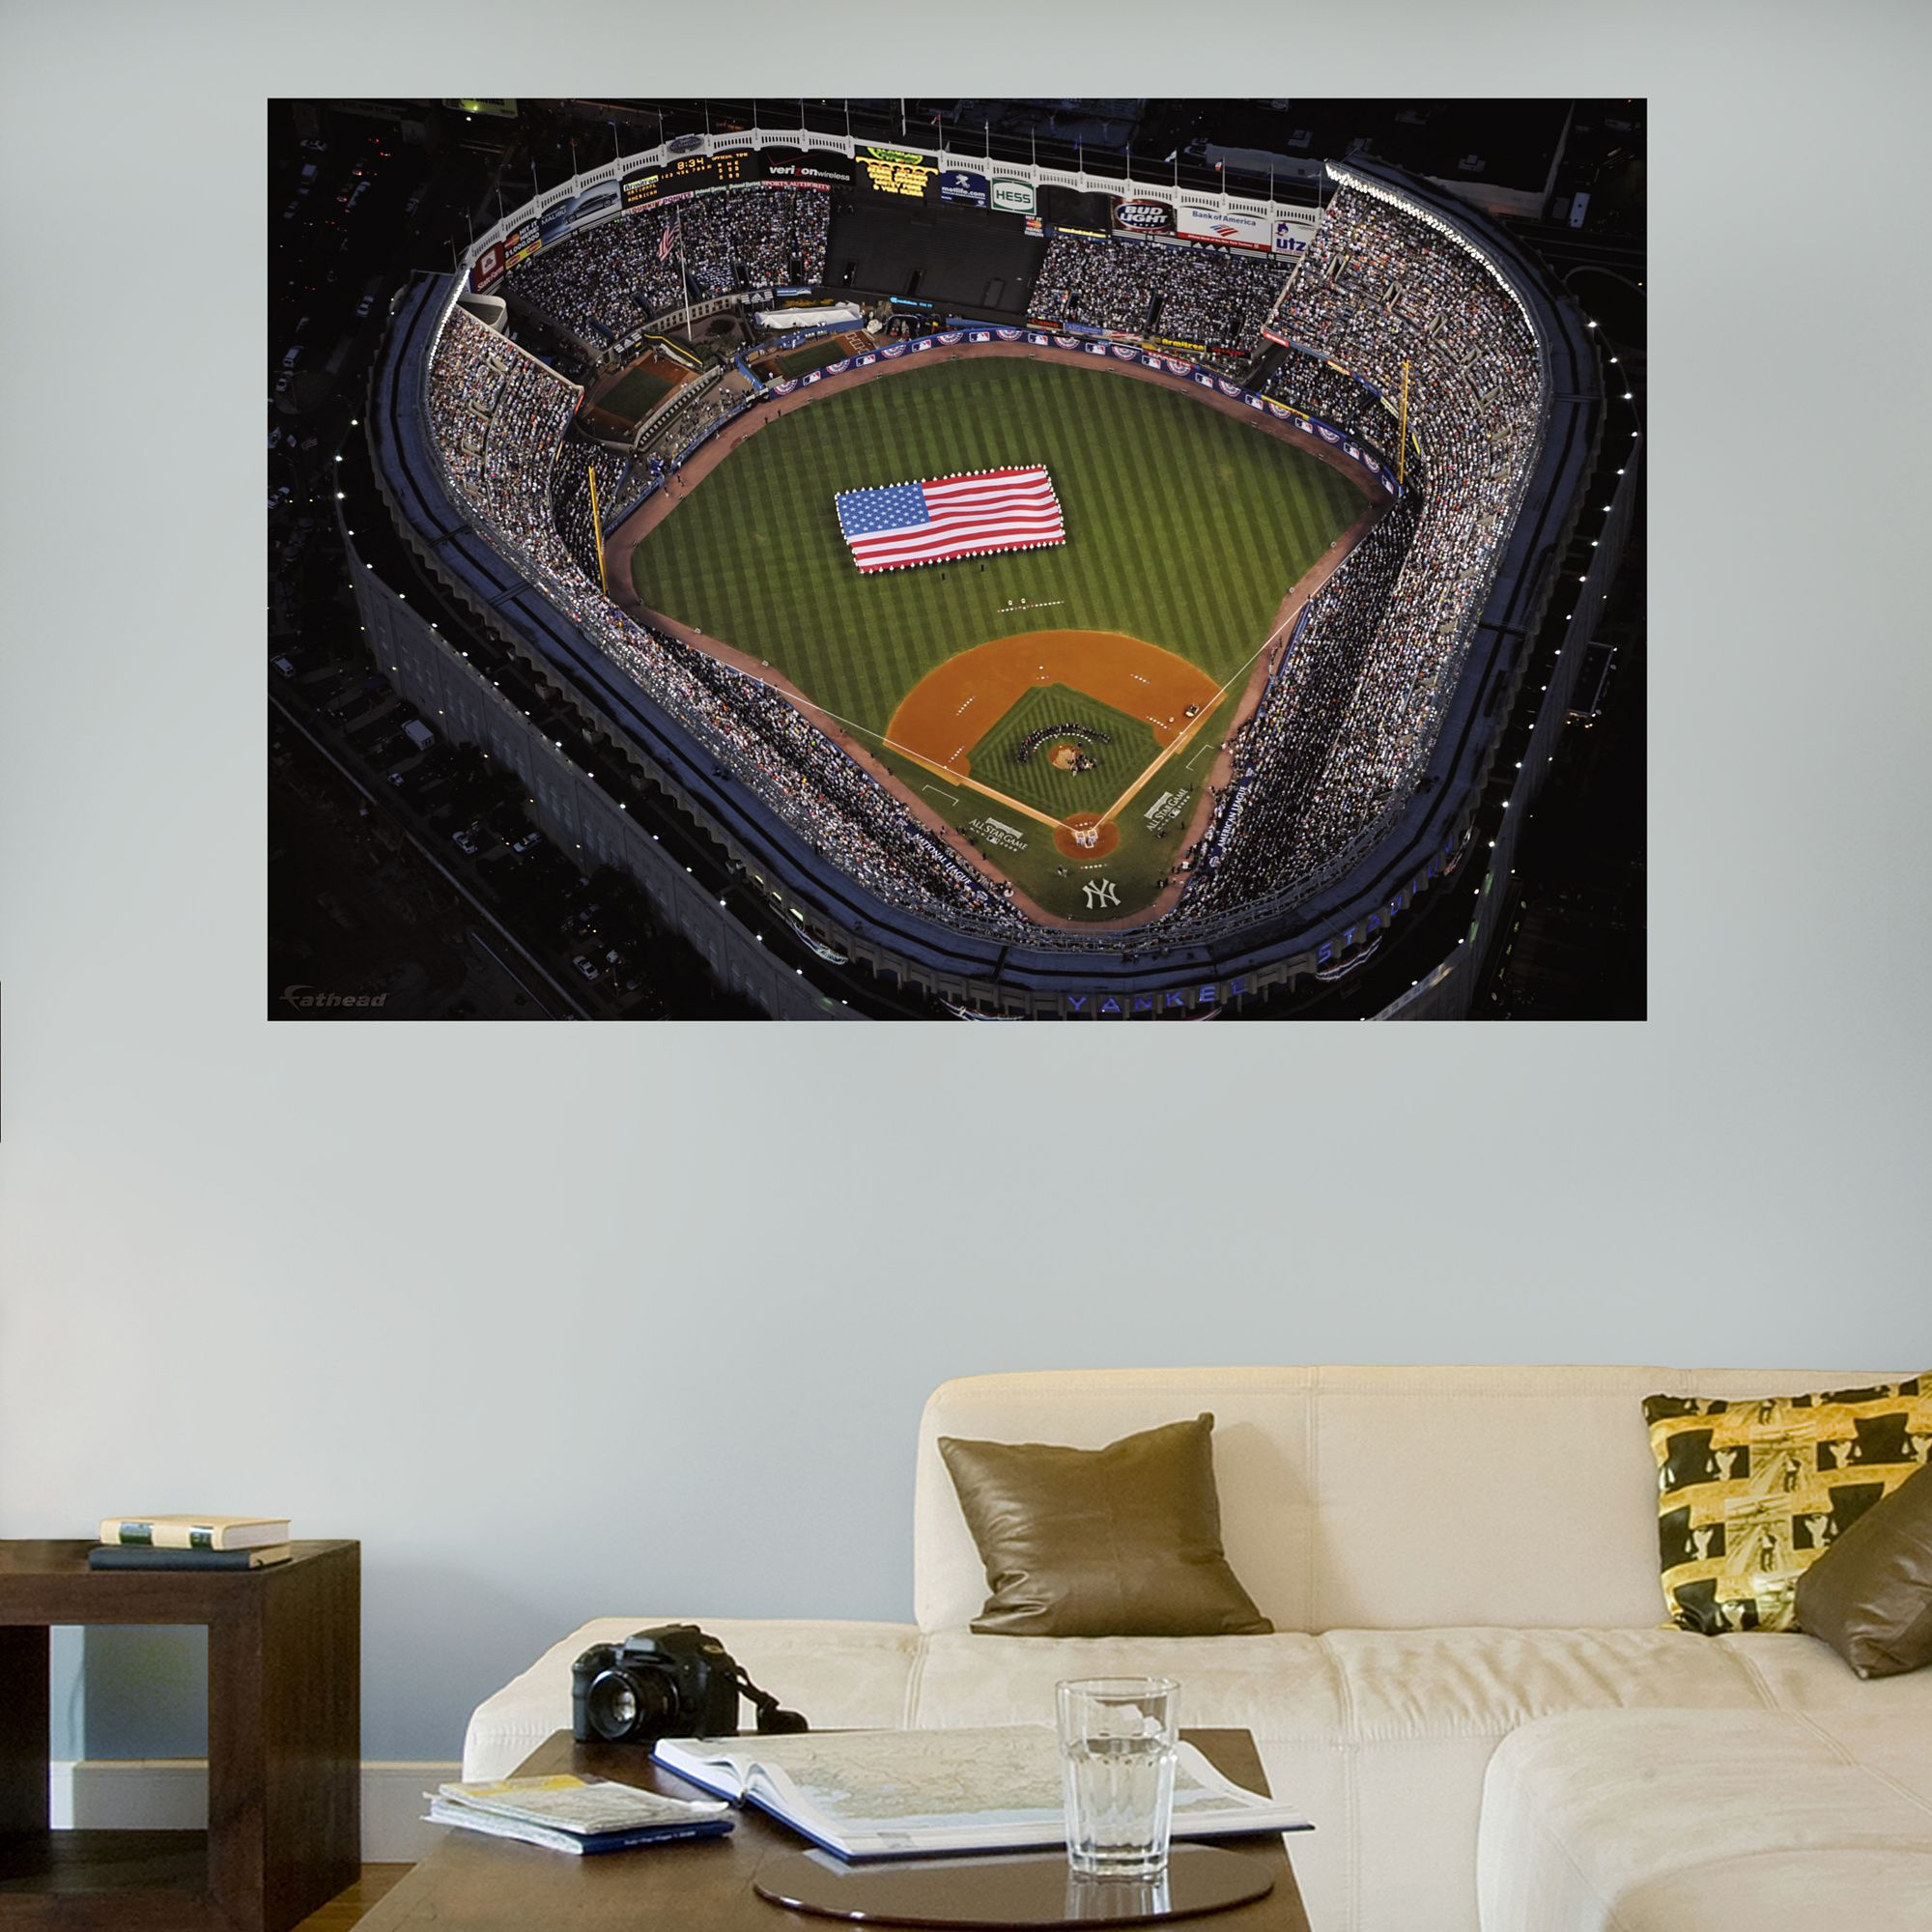 Old Yankee Stadium Aerial Mural Wall Graphic New York Yankees Decal Sports Décor Baseball Bedroom Man Cave Nursery